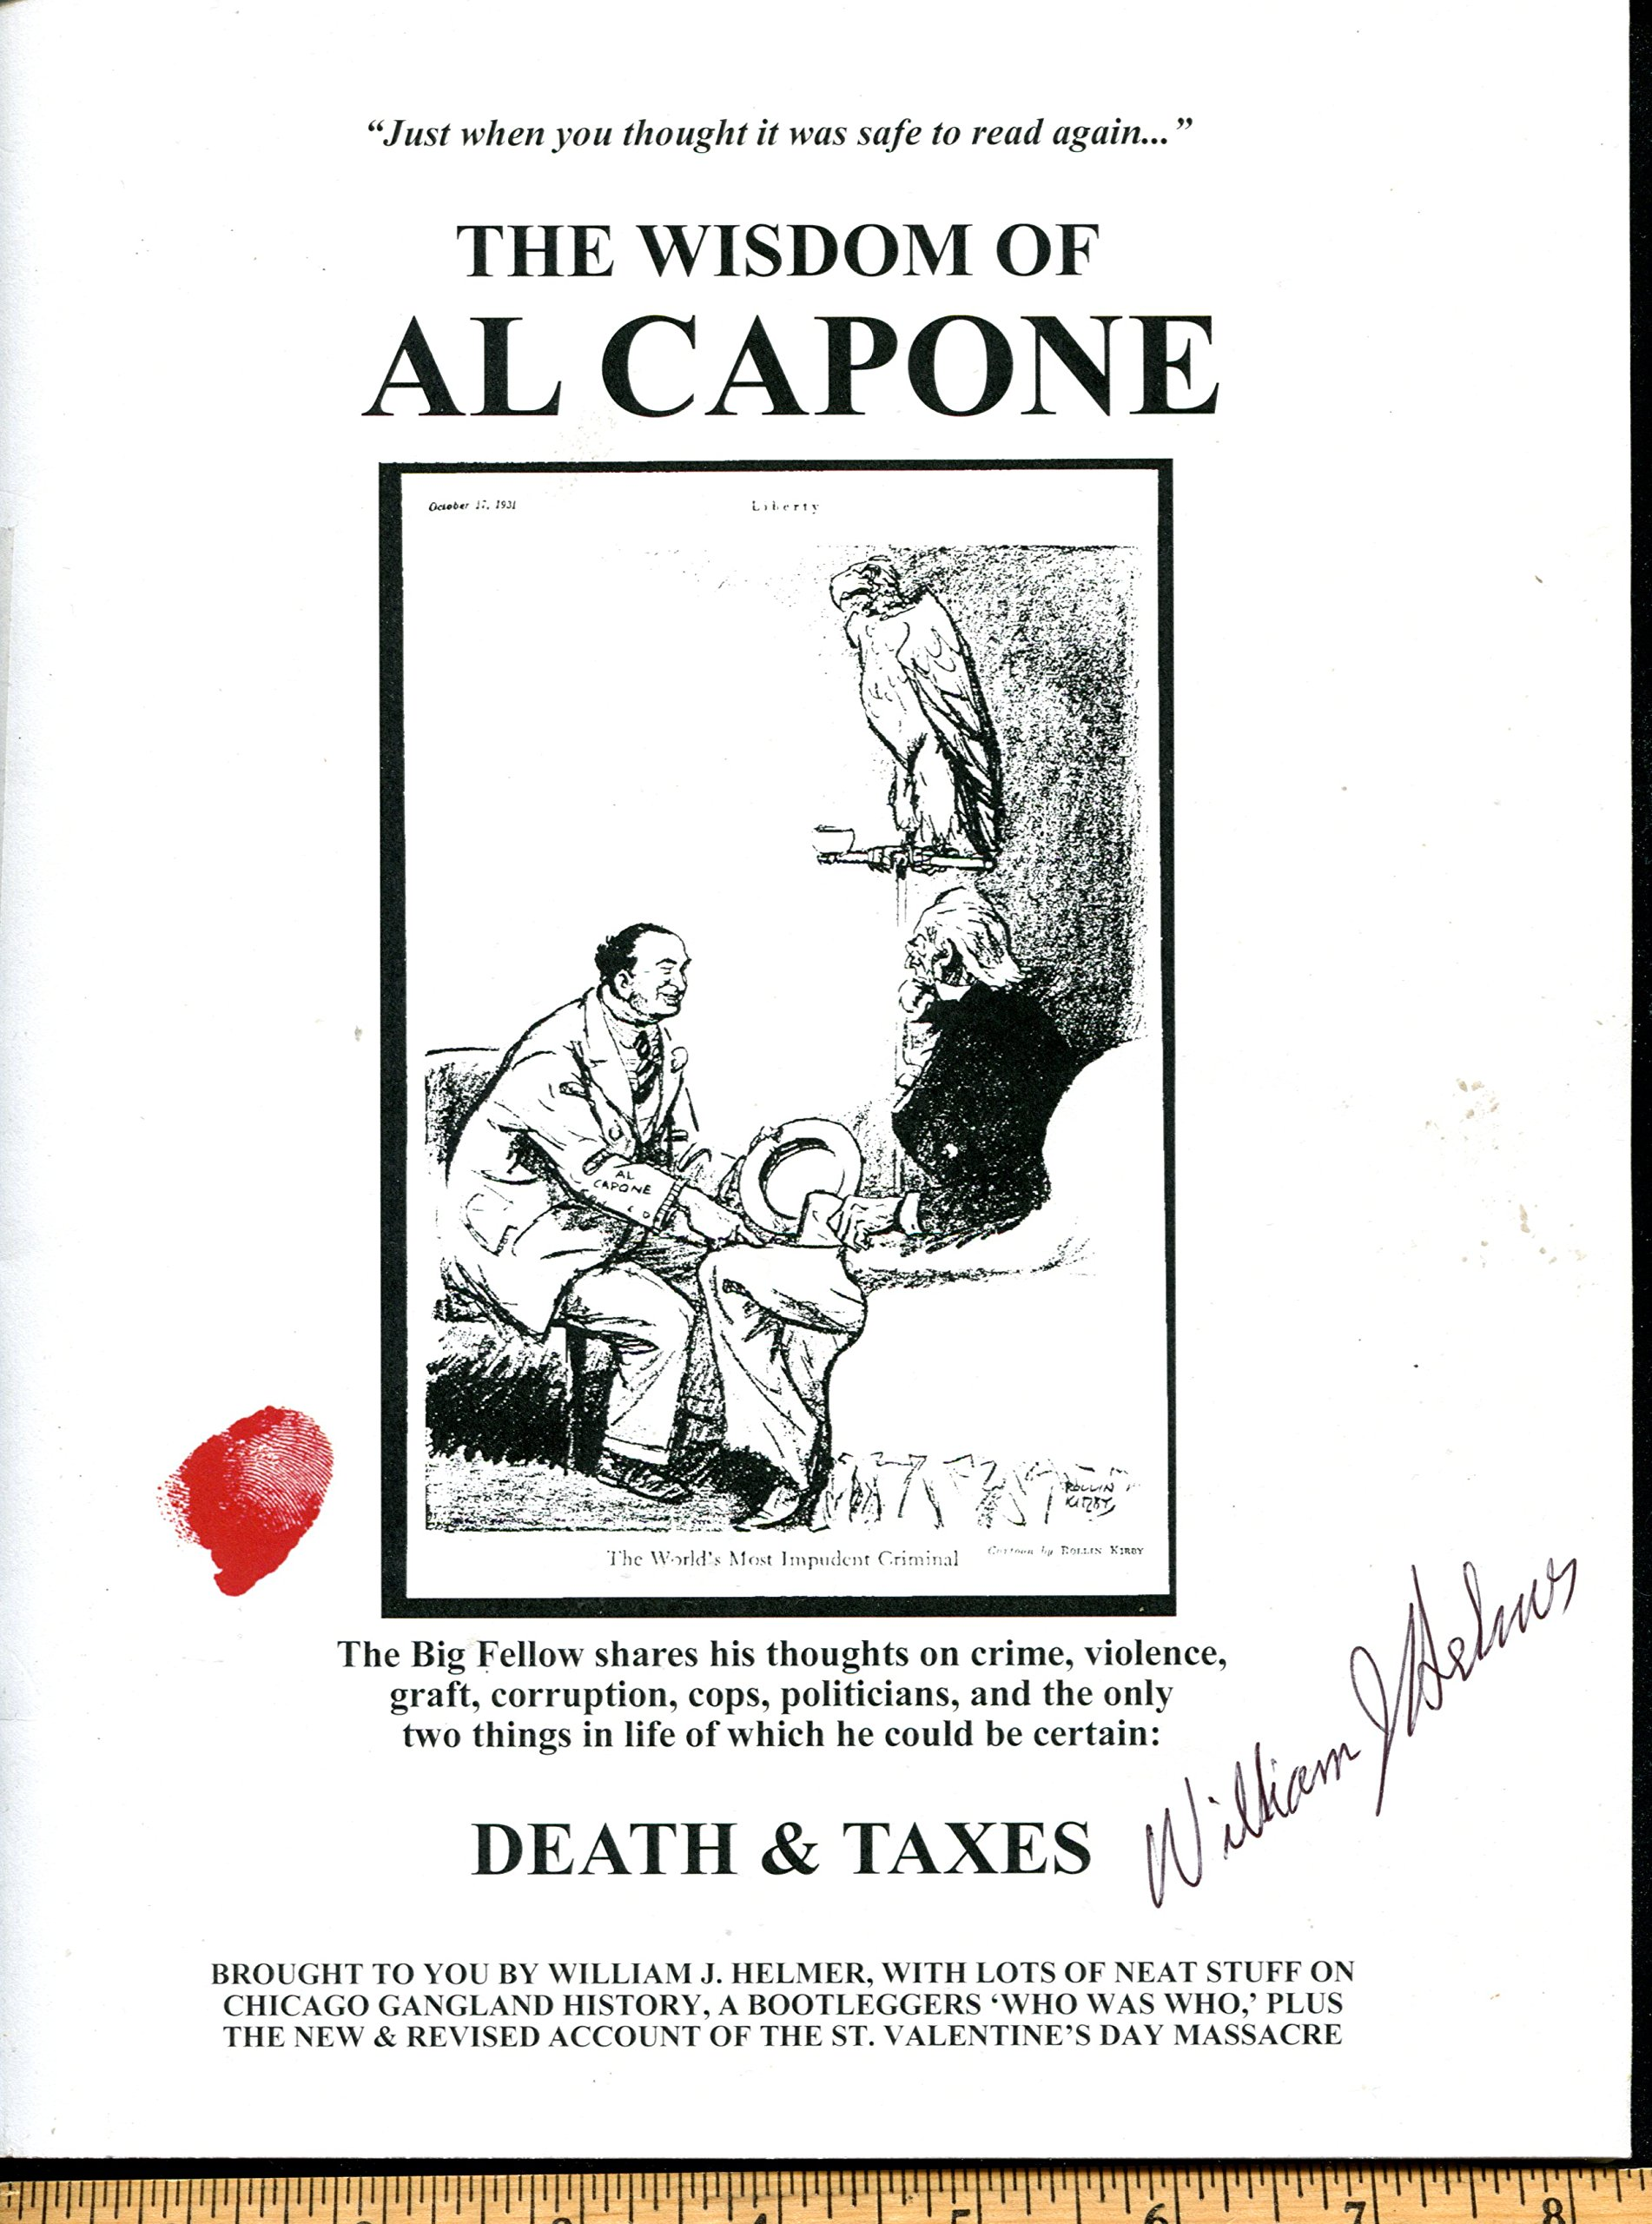 The wisdom of al capone william j helmer 9780999227107 amazon the wisdom of al capone william j helmer 9780999227107 amazon books magicingreecefo Images